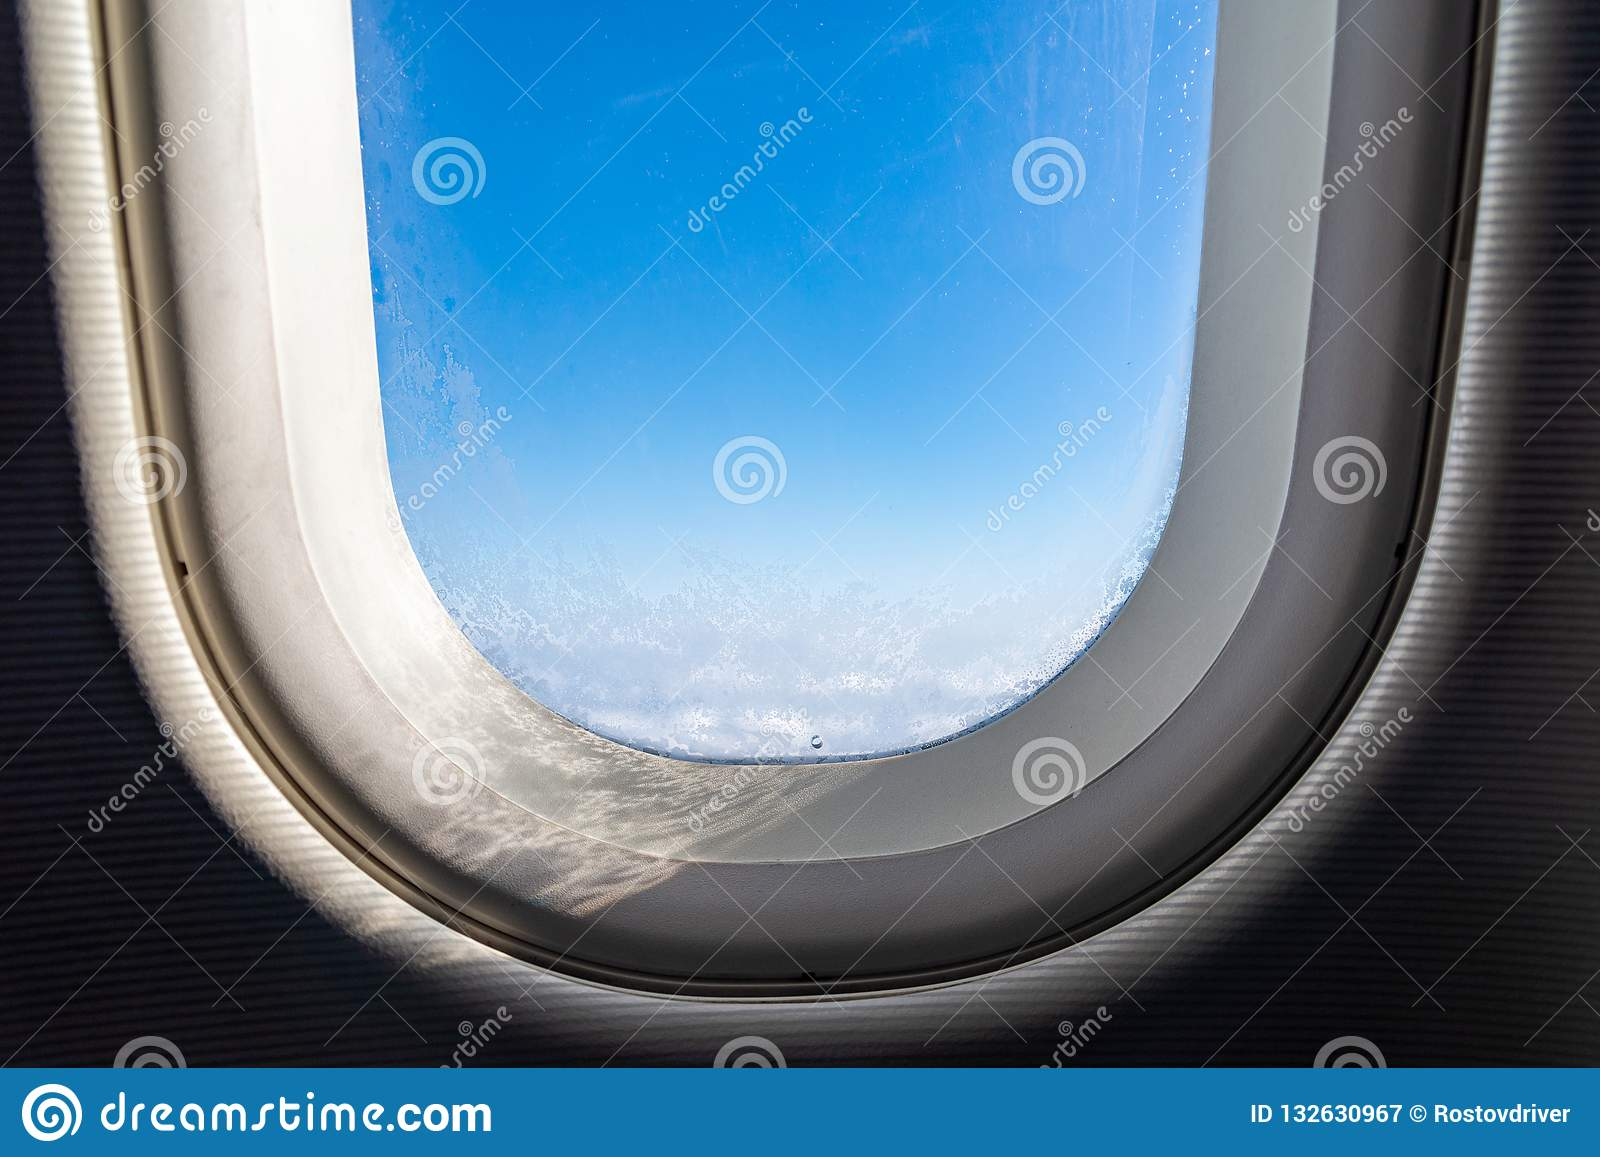 The window of the airplane. A view of porthole window on board an airbus for your travel concept or passenger air transportation